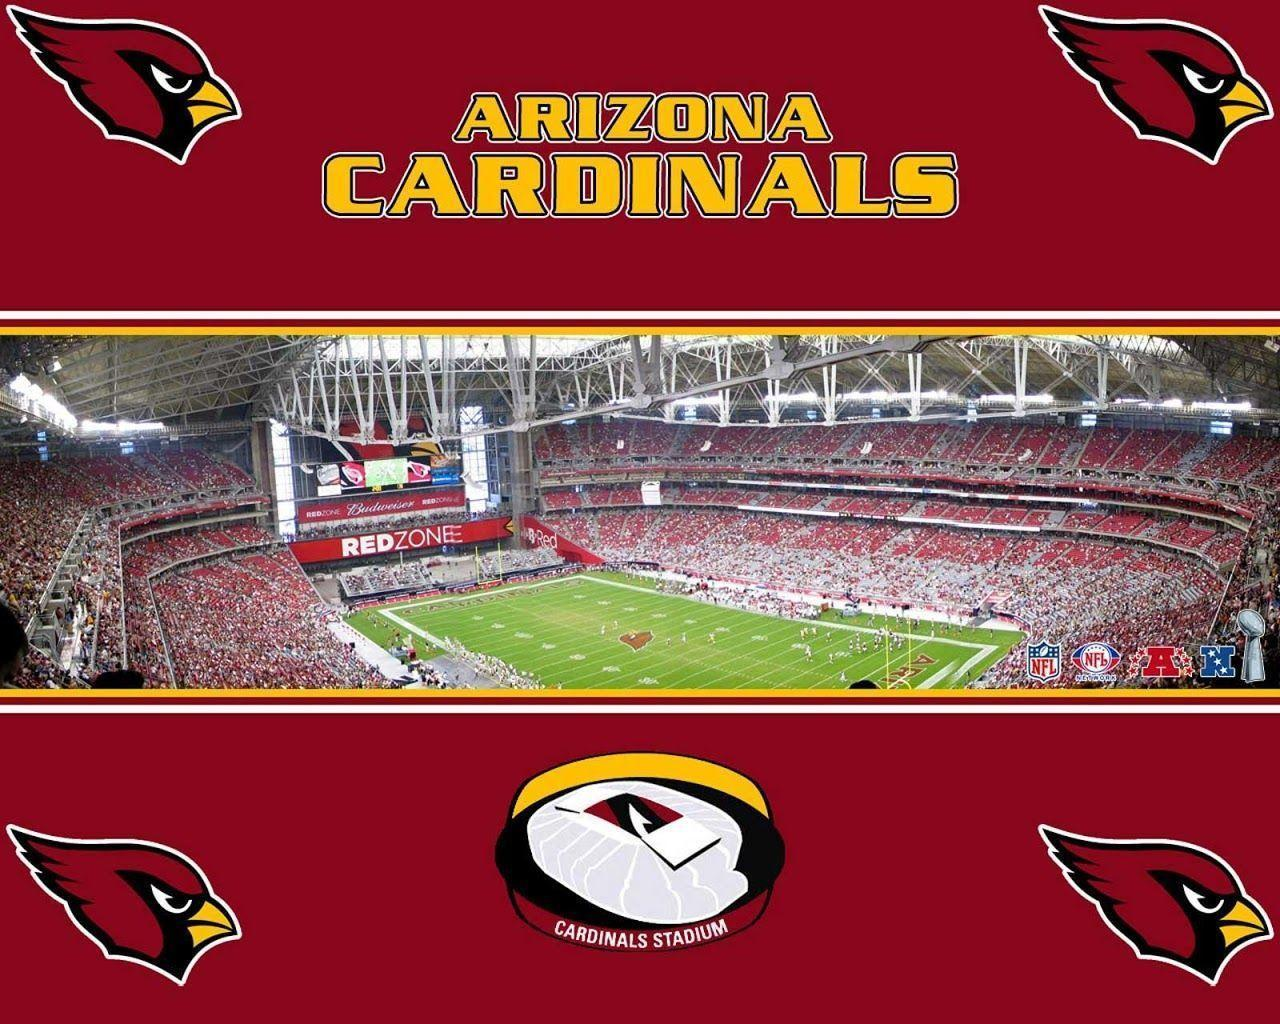 Arizona Cardinals Wallpapers Download - Arizona Cardinals ...